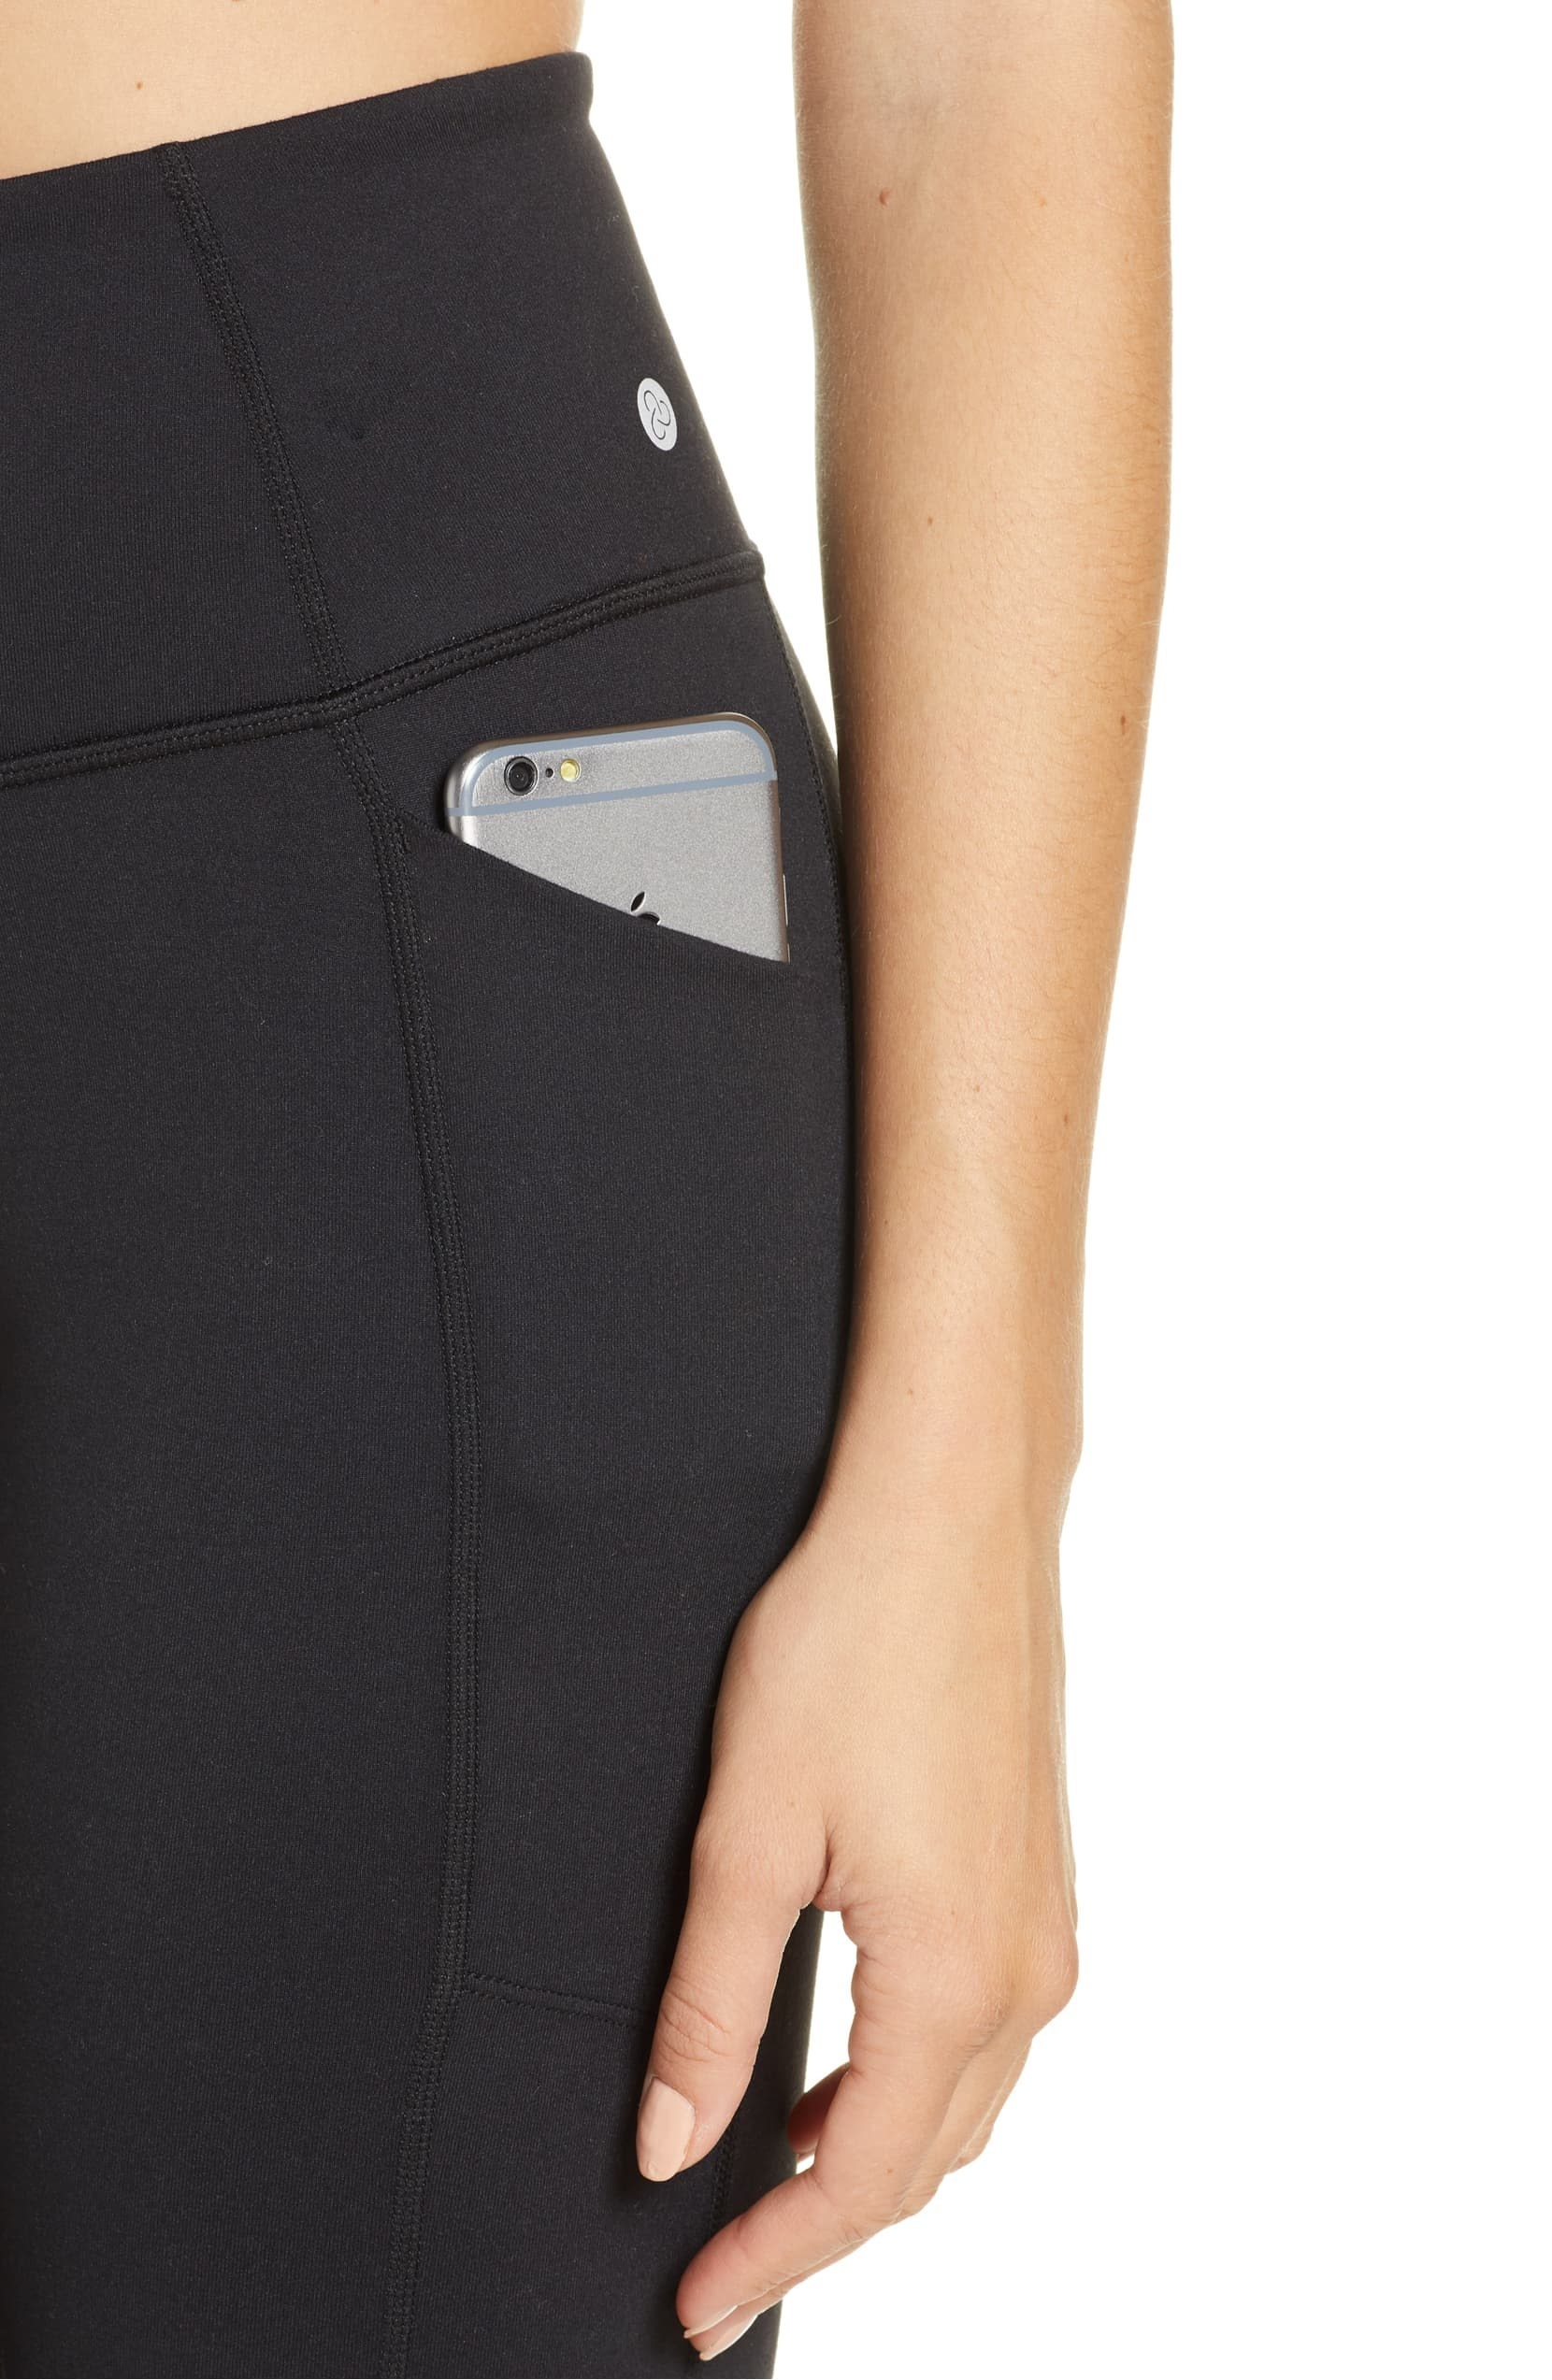 A woman wearing Zella leggings with a phone in the side pocket.